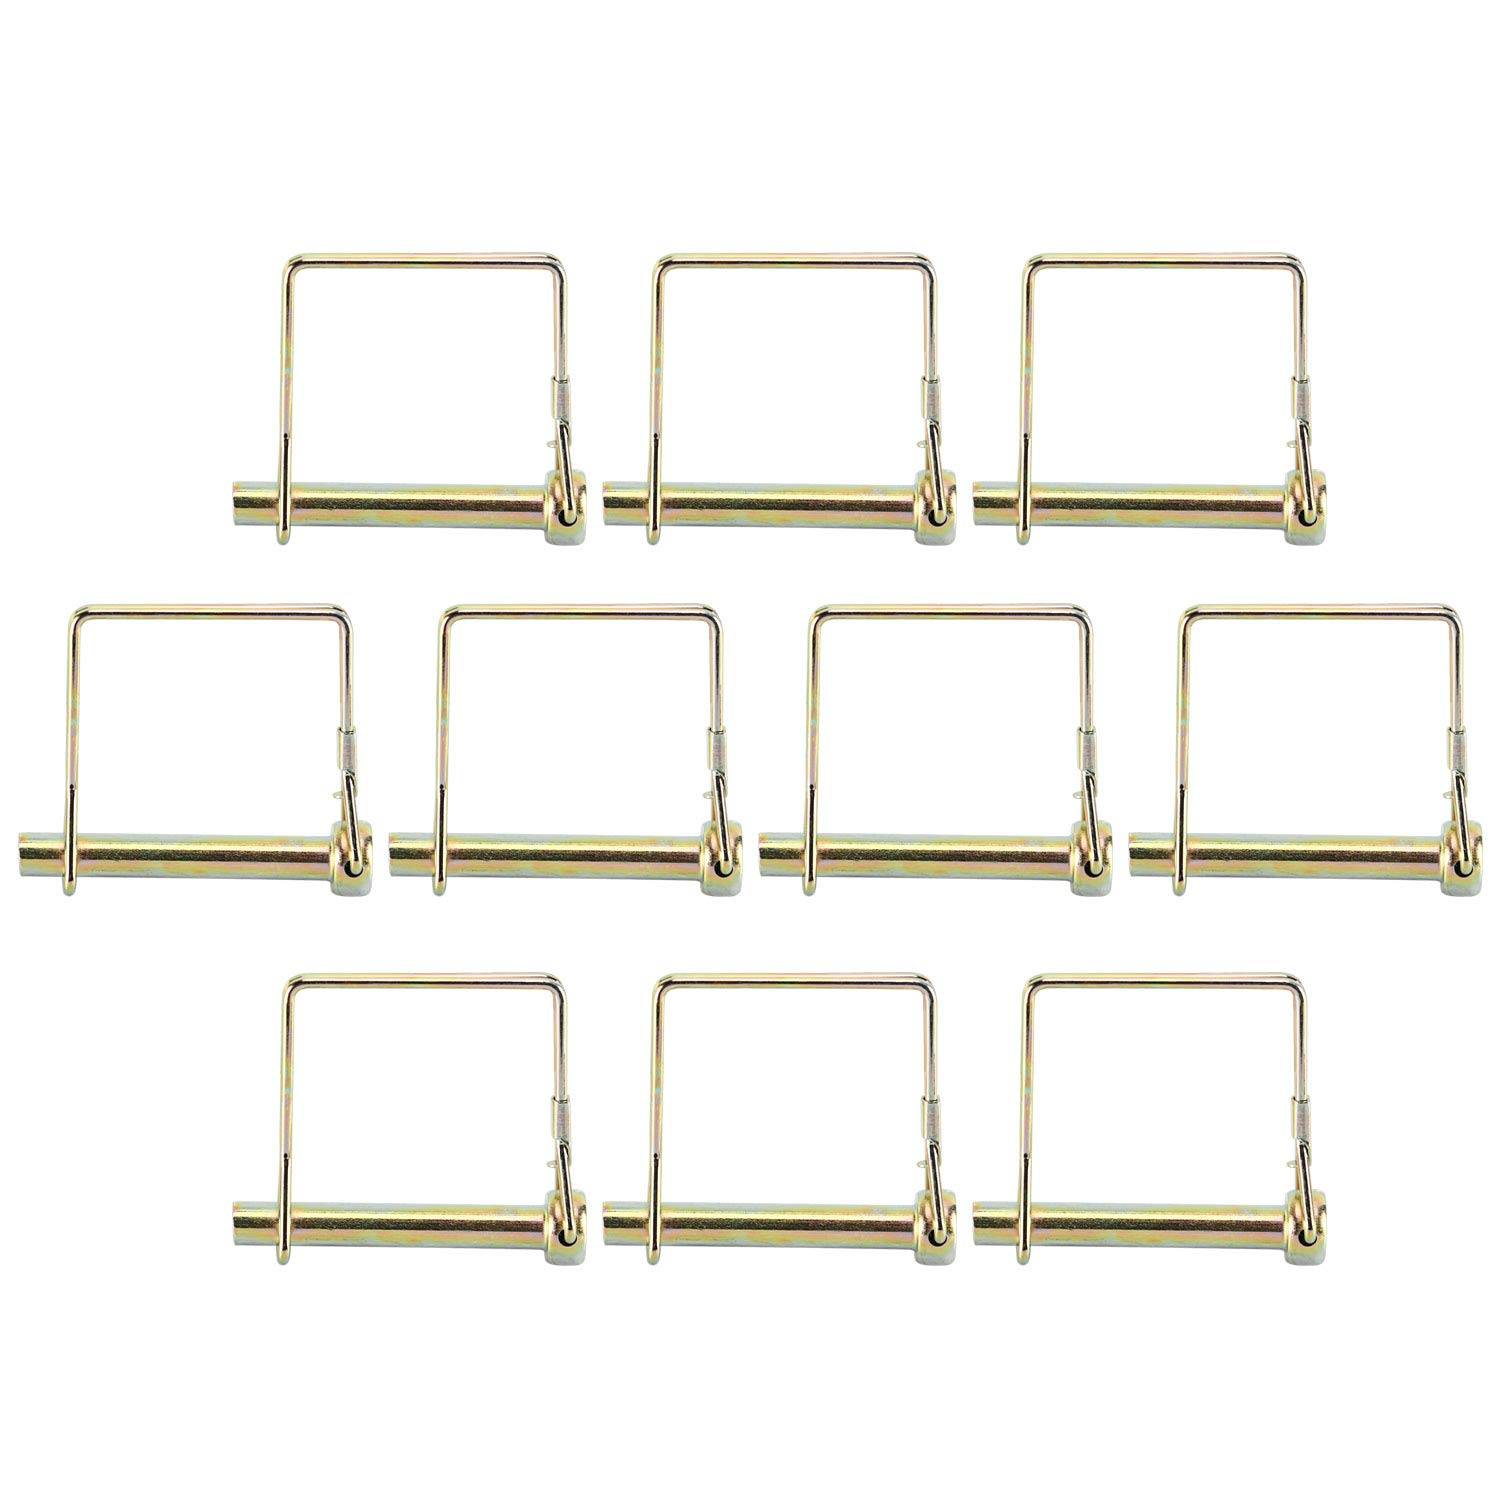 Stainless Steel PTO Square Shaft Locking Trailer Hitch Pin 5//16 x 2-1//4 Pack of 10